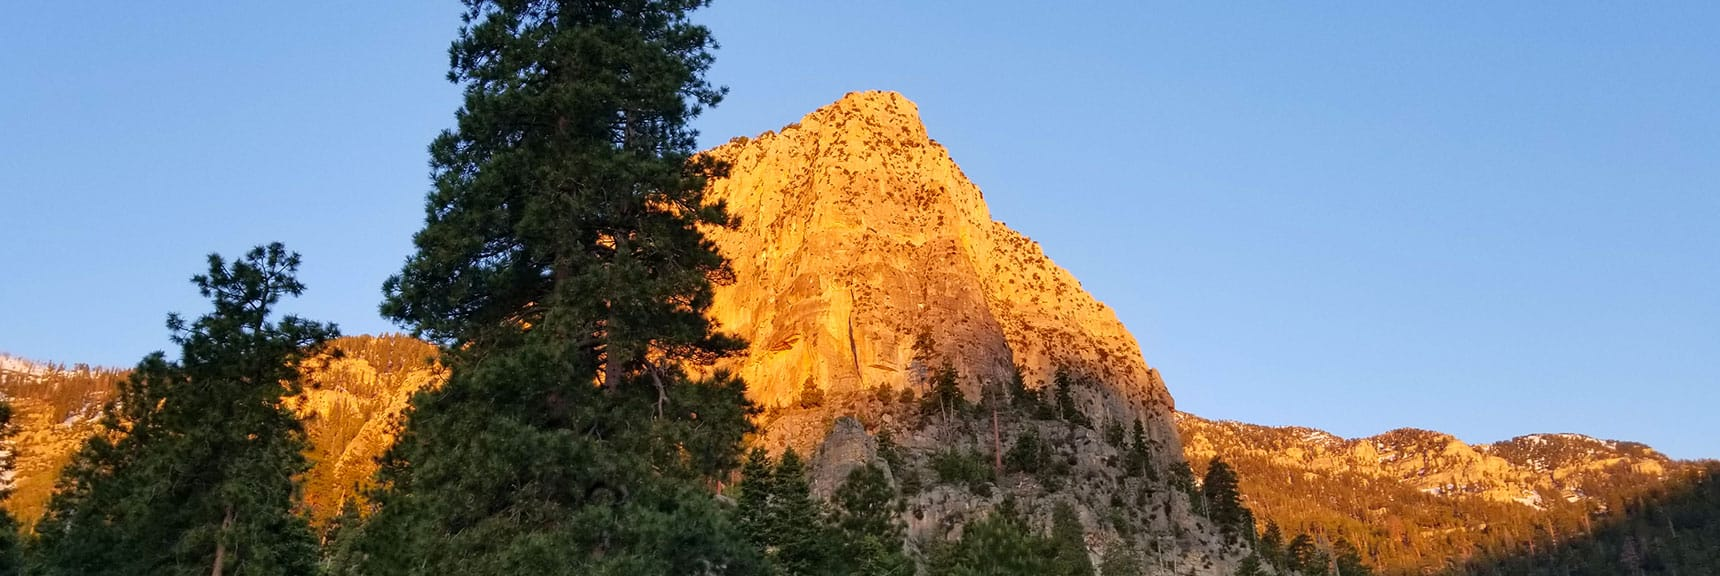 Cathedral Rock Viewed from South Climb Trailhead in Mt. Charleston Wilderness, Nevada